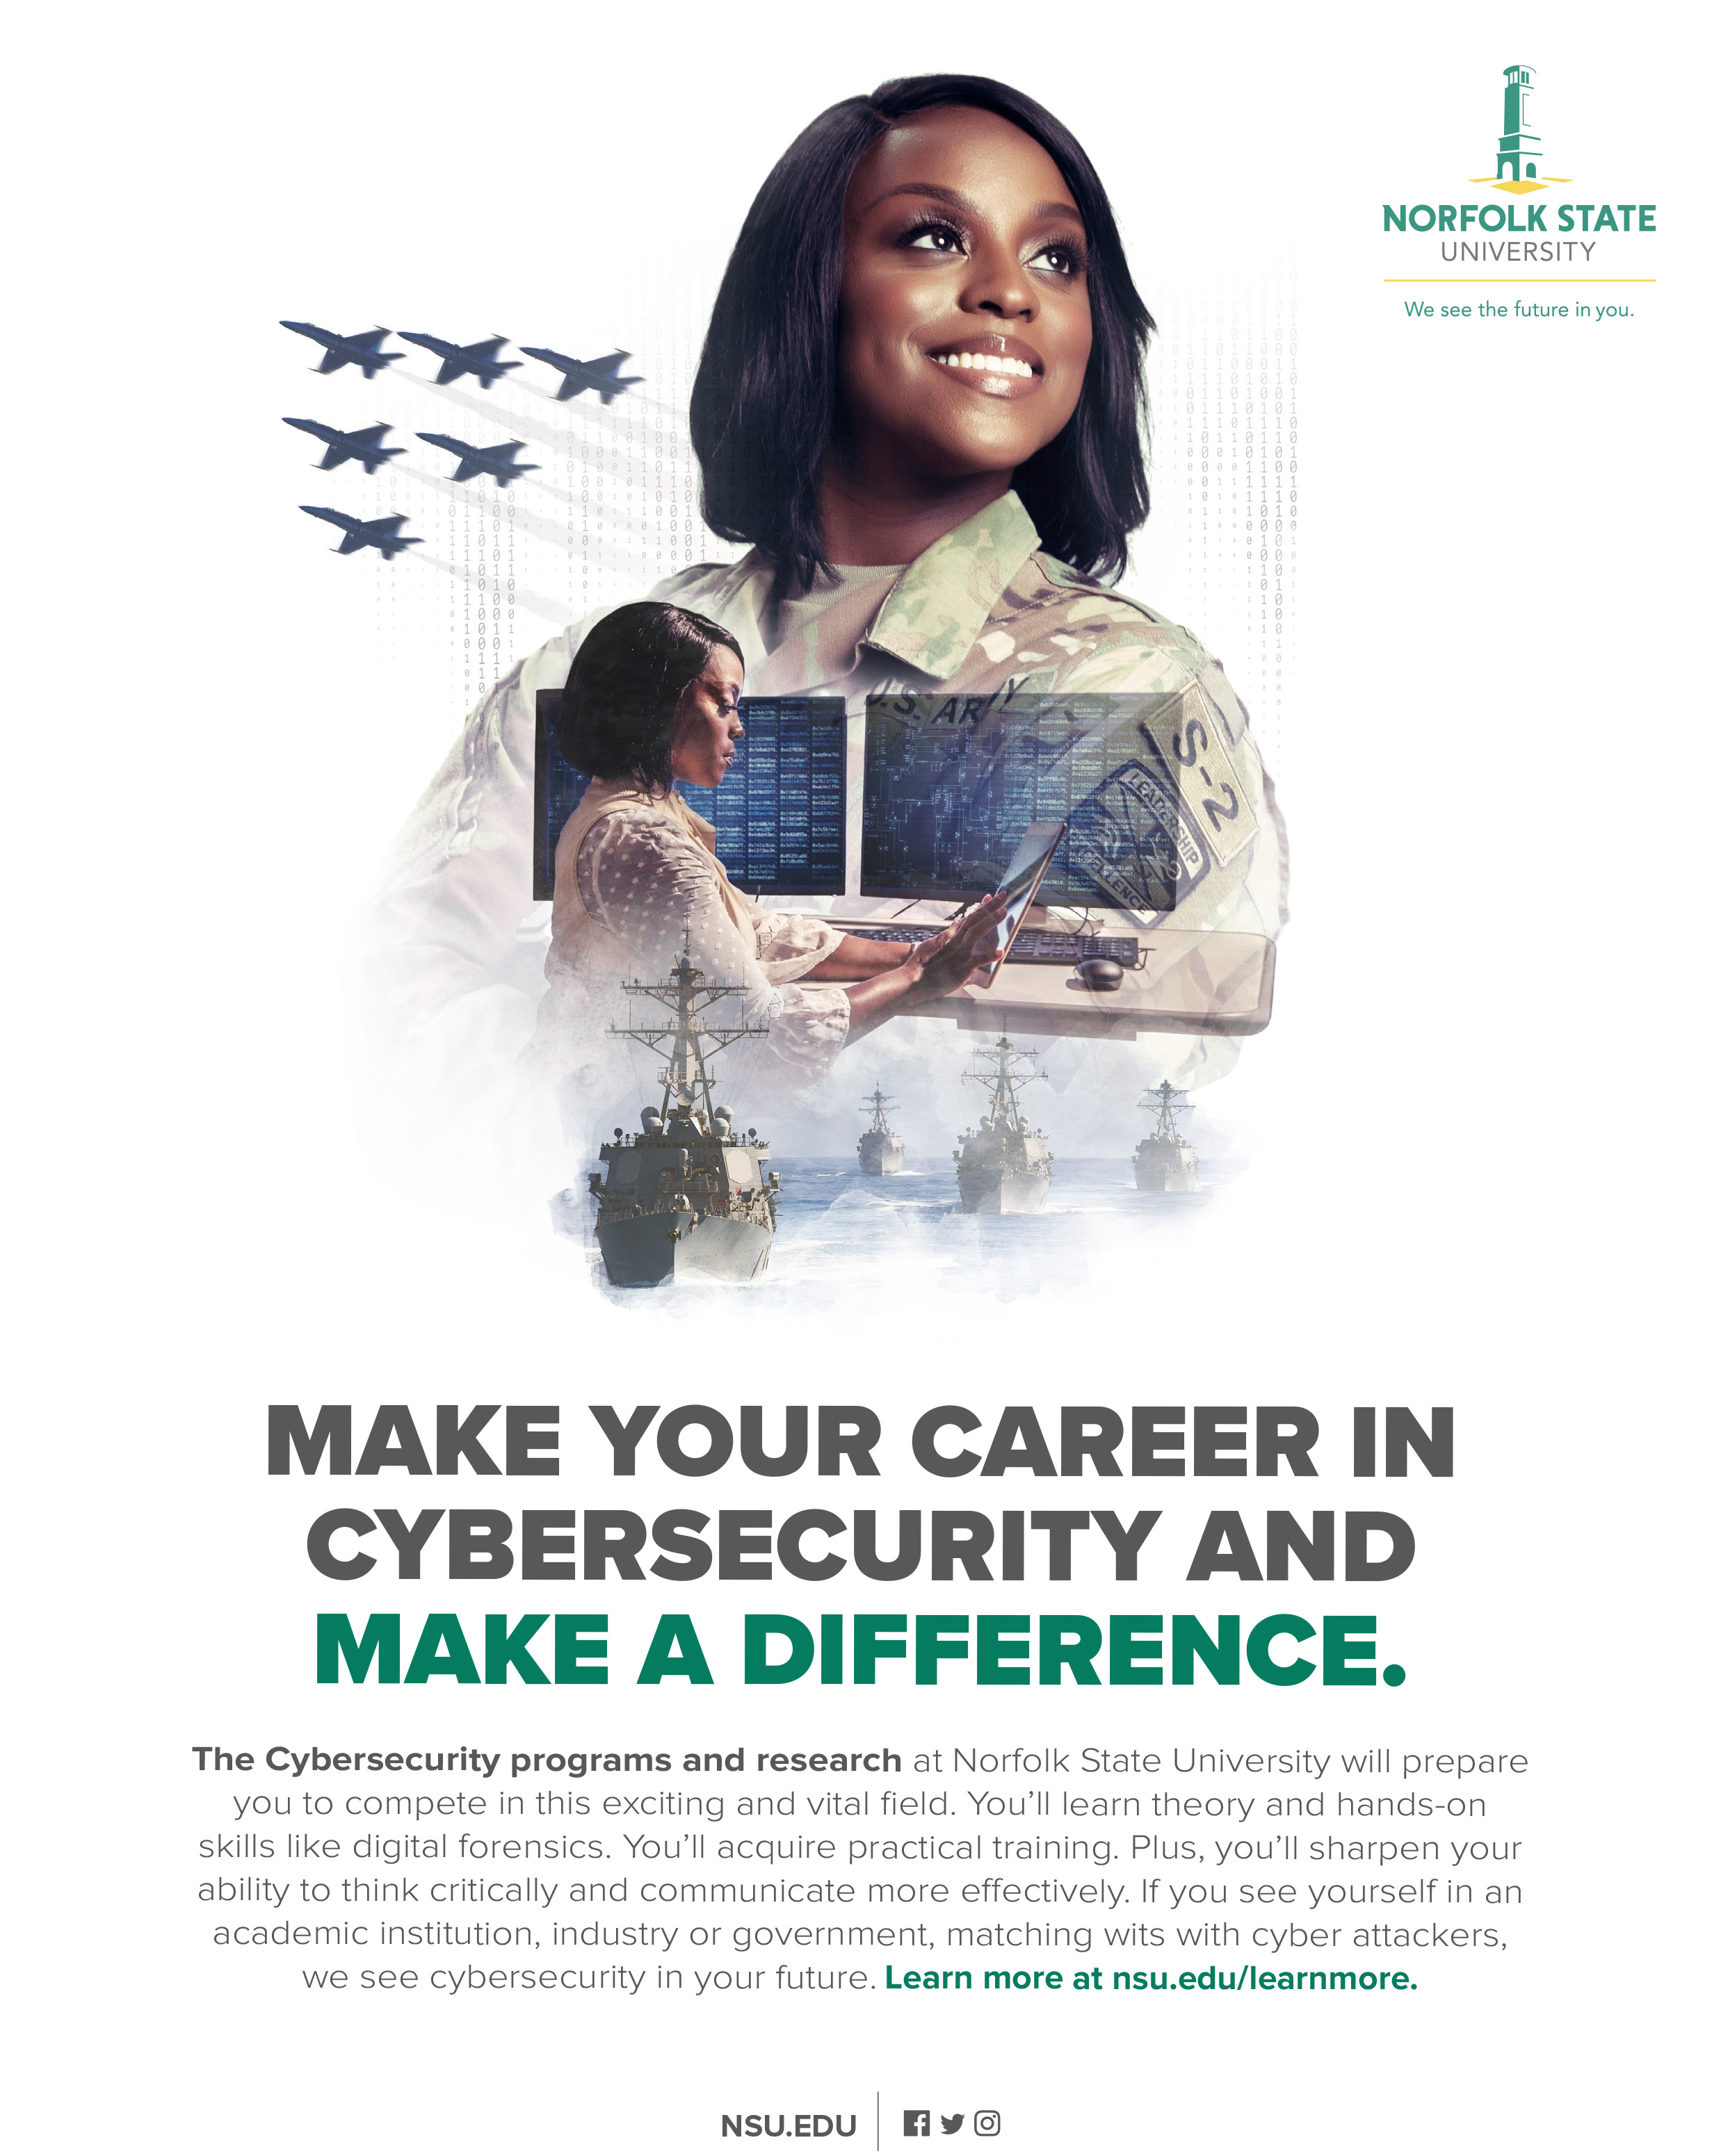 Make your career in cybersecurity and make a difference. The Cybersecurity programs and research at Norfolk State University will prepare you to compete in this exciting and vital field. You'll learn theory and hands-on skills like digital forensics. You'll acquire practical training. Plus, you'll sharpen your ability to think critically and communicate more effectively. If you see yourself in an academic institution, industry or government, matching wits with cyber attackers, we see cybersecurity in your future. Learn more at nsu@edu/learnmore.